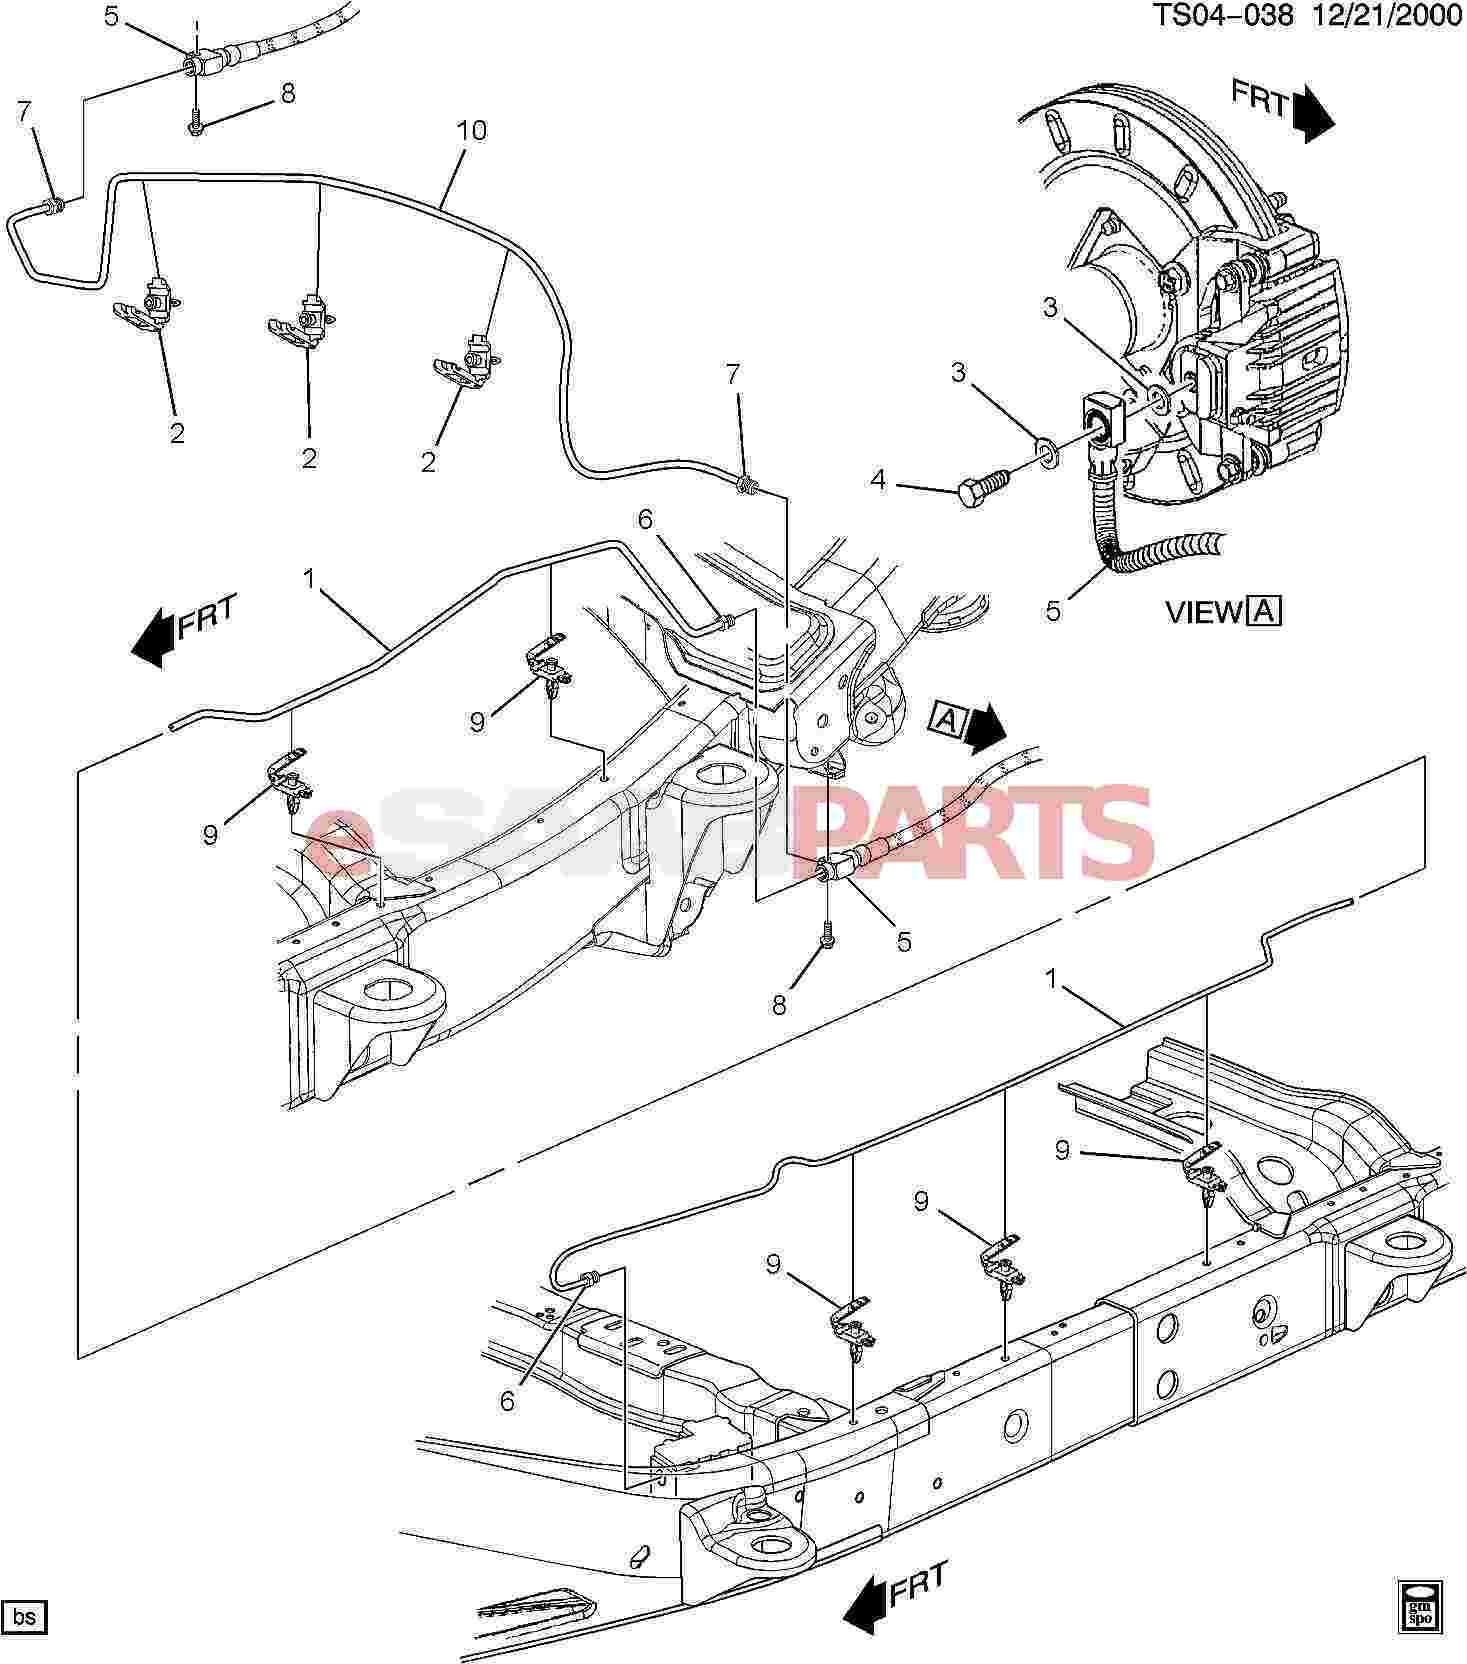 drum brake assembly diagram kawasaki klr250 kawasaki